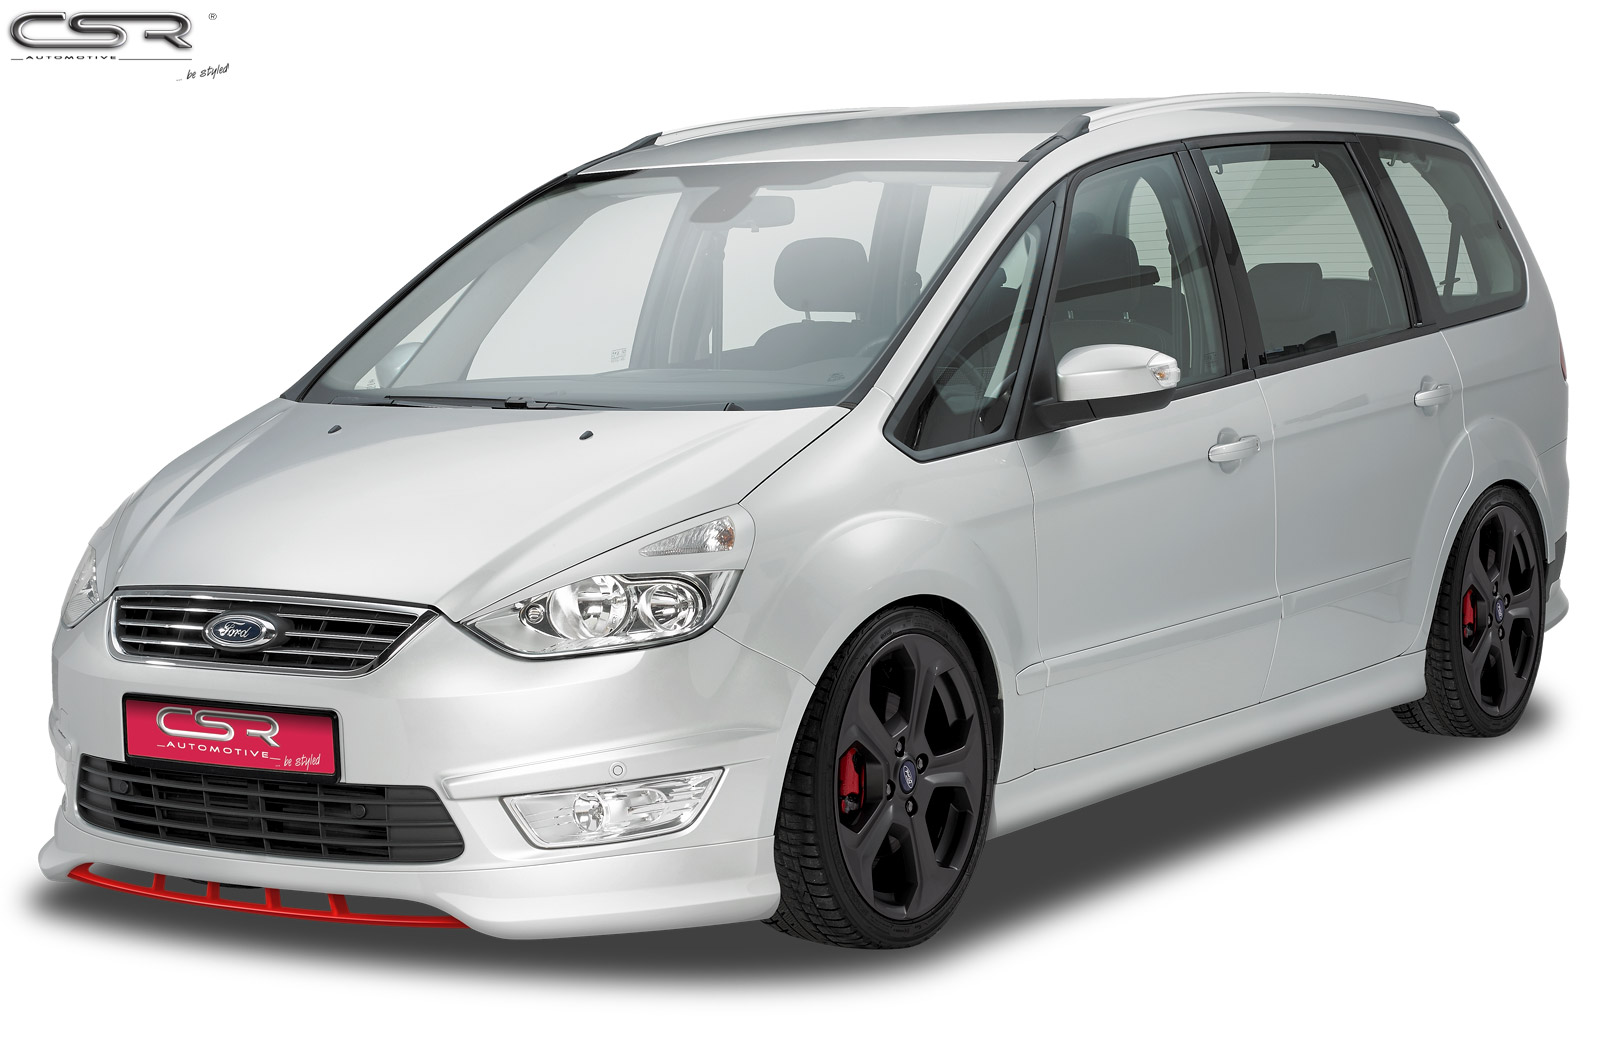 exteri r ford galaxy wa6 p edn spoiler fa222 csr tuning shop. Black Bedroom Furniture Sets. Home Design Ideas